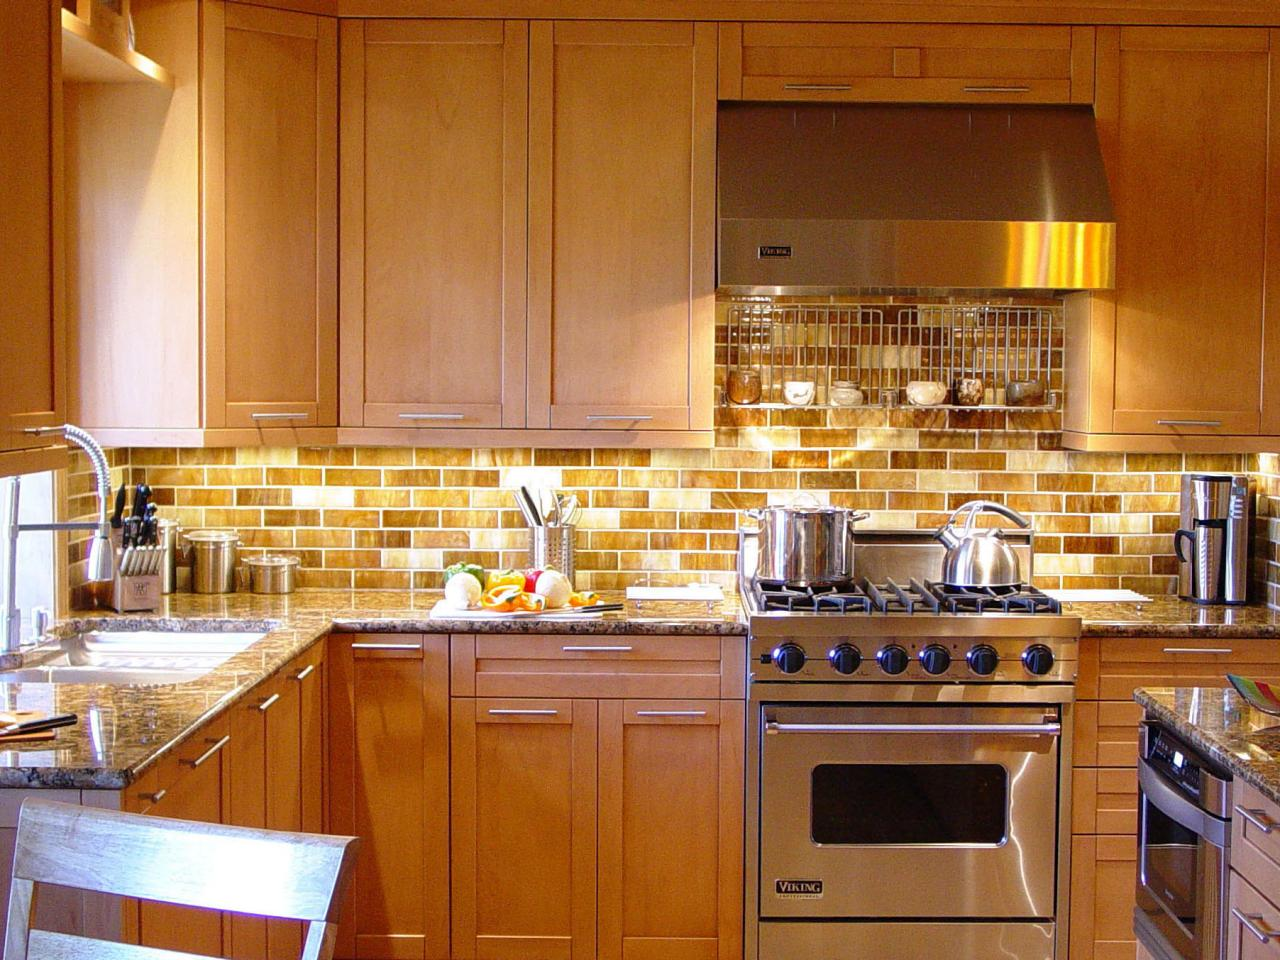 Brown Tile Kitchen Backsplash Designs Decorating Simple Kitchen with Oak Cabinets and Counter